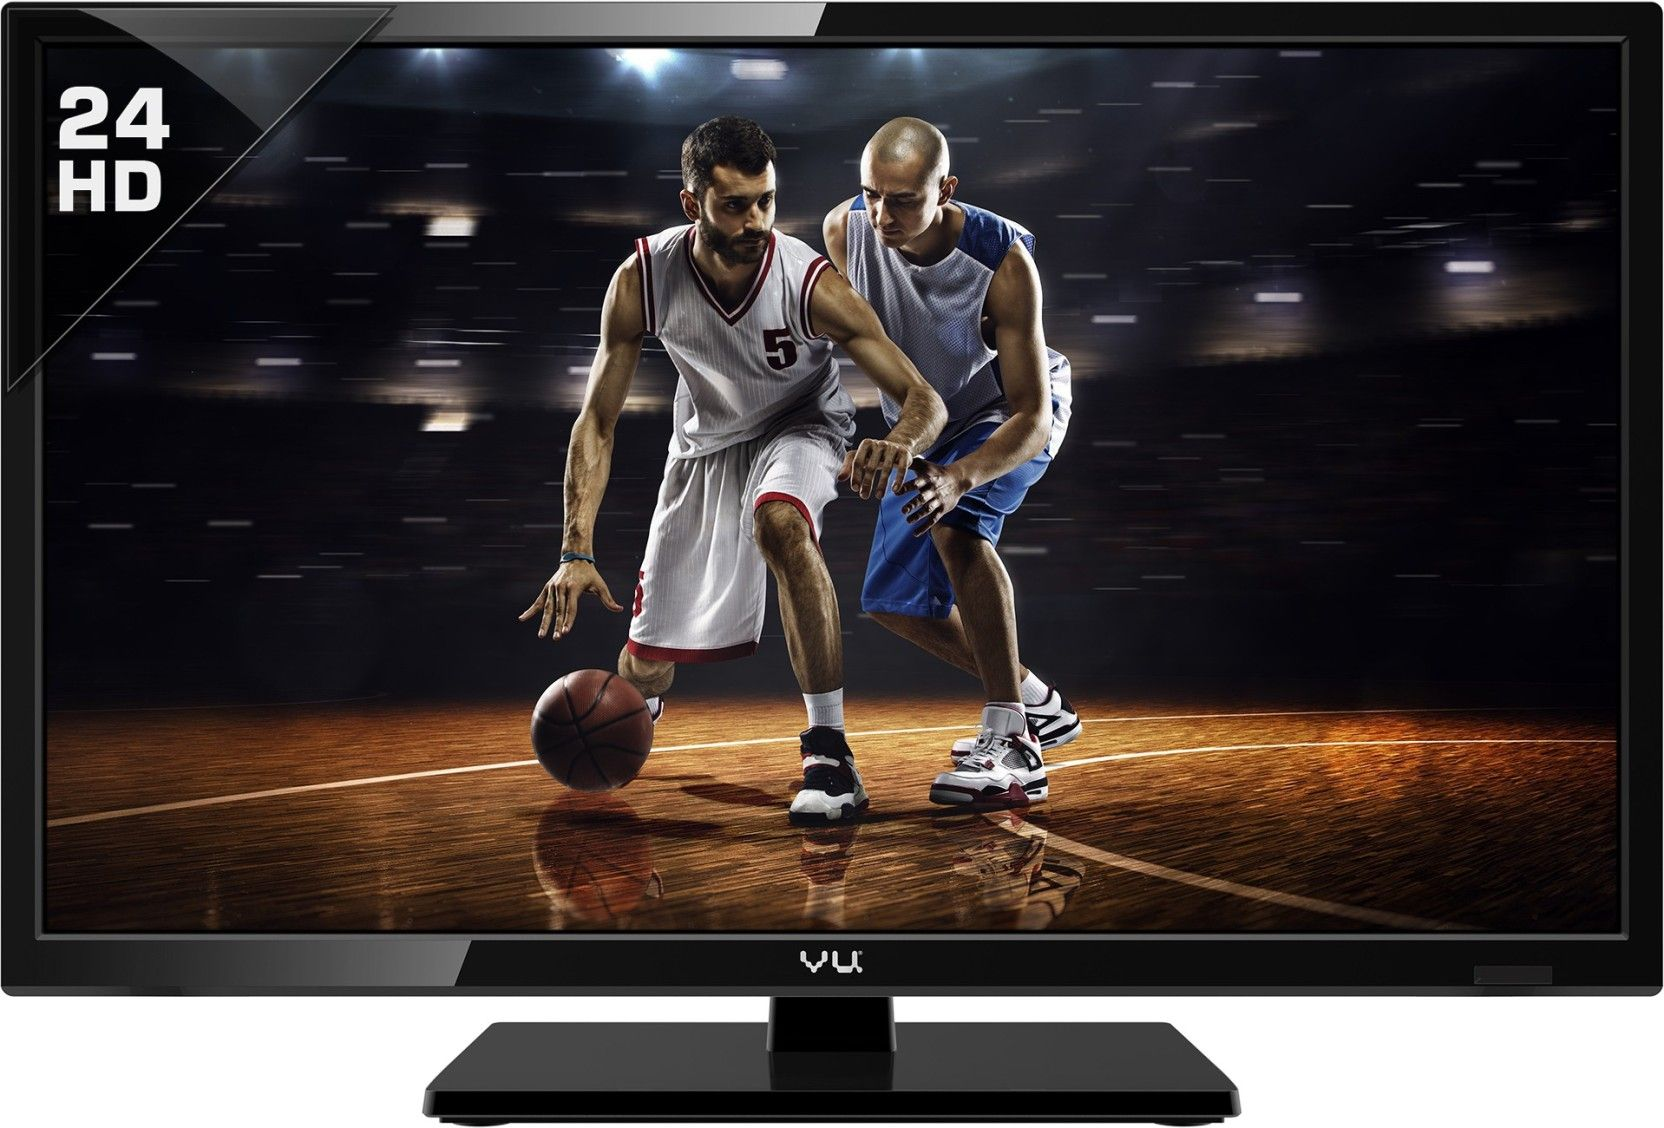 60cm Tv Vu 60cm 24 Hd Ready Led Tv 24jl3 1 X Hdmi 1 X Usb Rs 8999